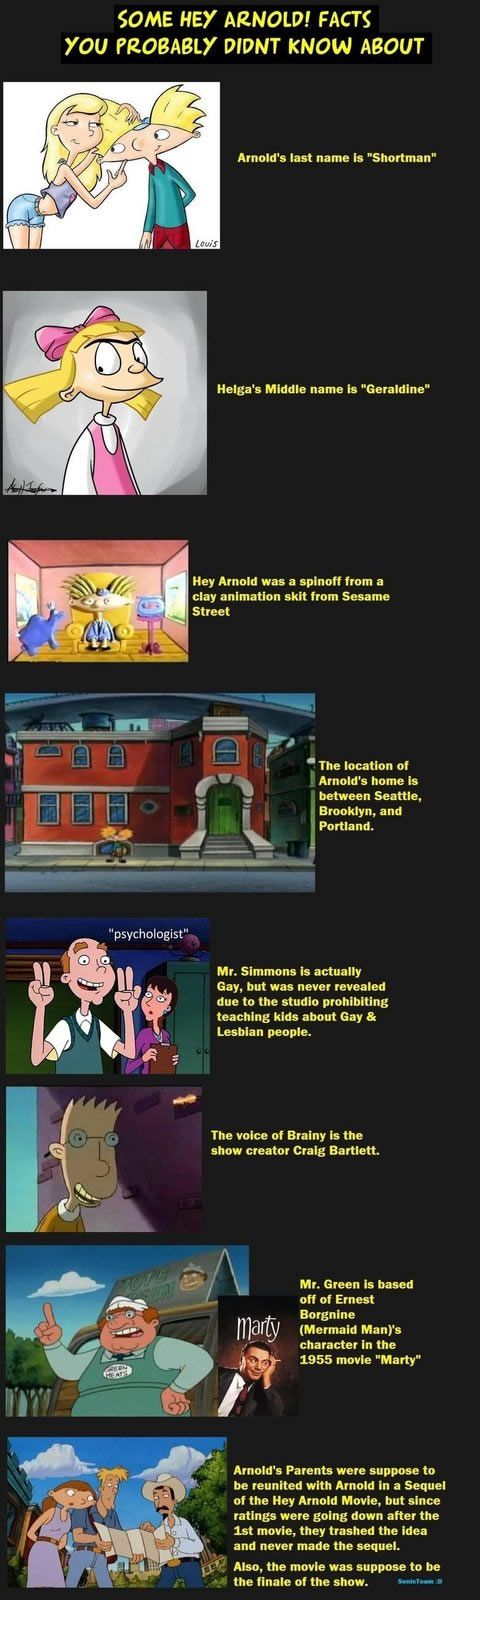 Hey Arnold facts.